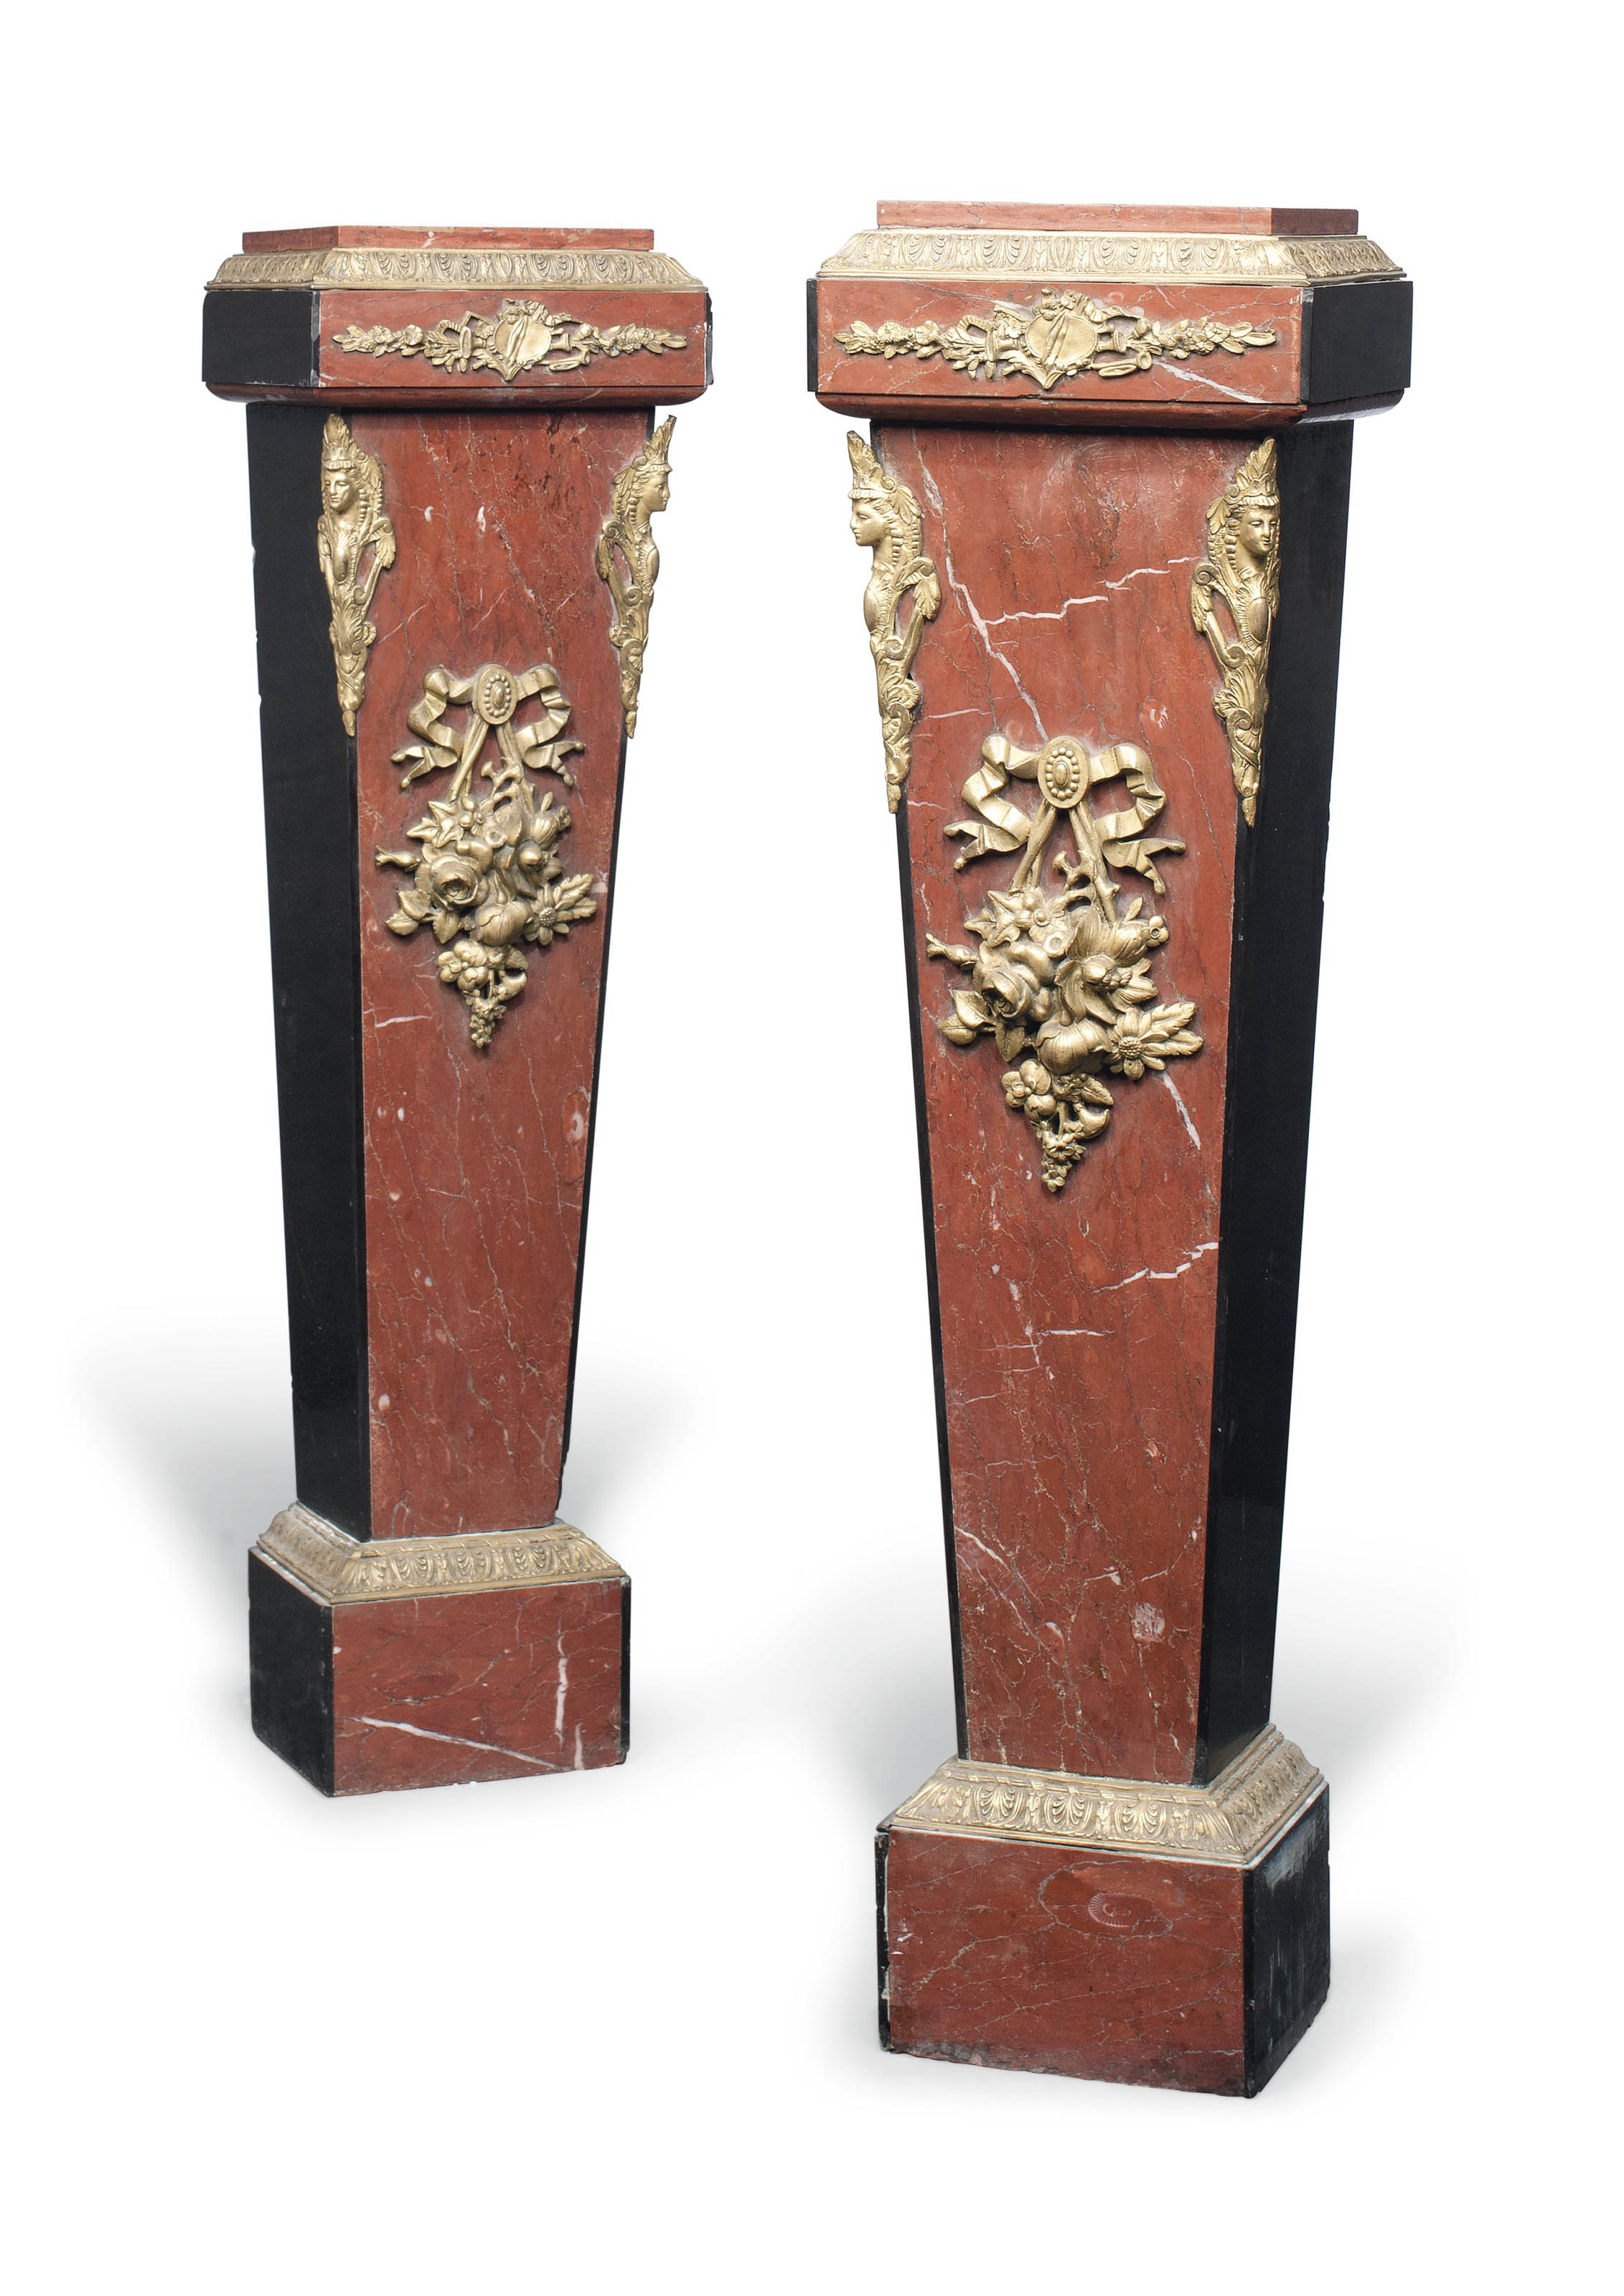 A PAIR OF CONTINENTAL ROUGE AND BLACK MARBLE AND GILT BRONZE MOUNTED PEDESTALS